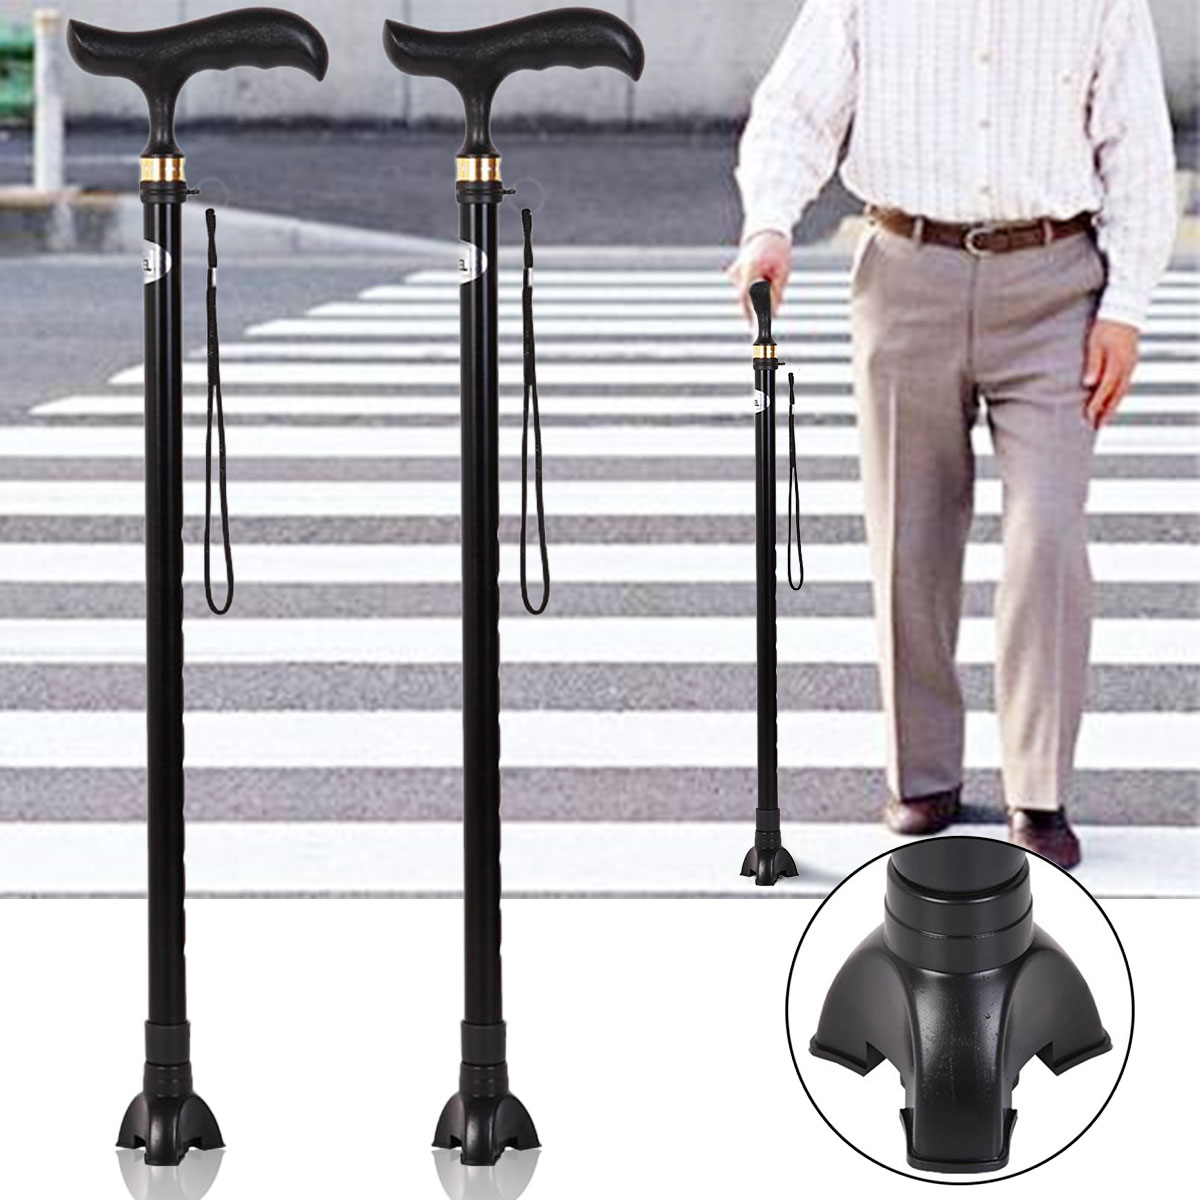 Canes Crutch Leg Rubber Self Standing Walking Stick Tripod Tip End Cap Non-slip Protecter Tools